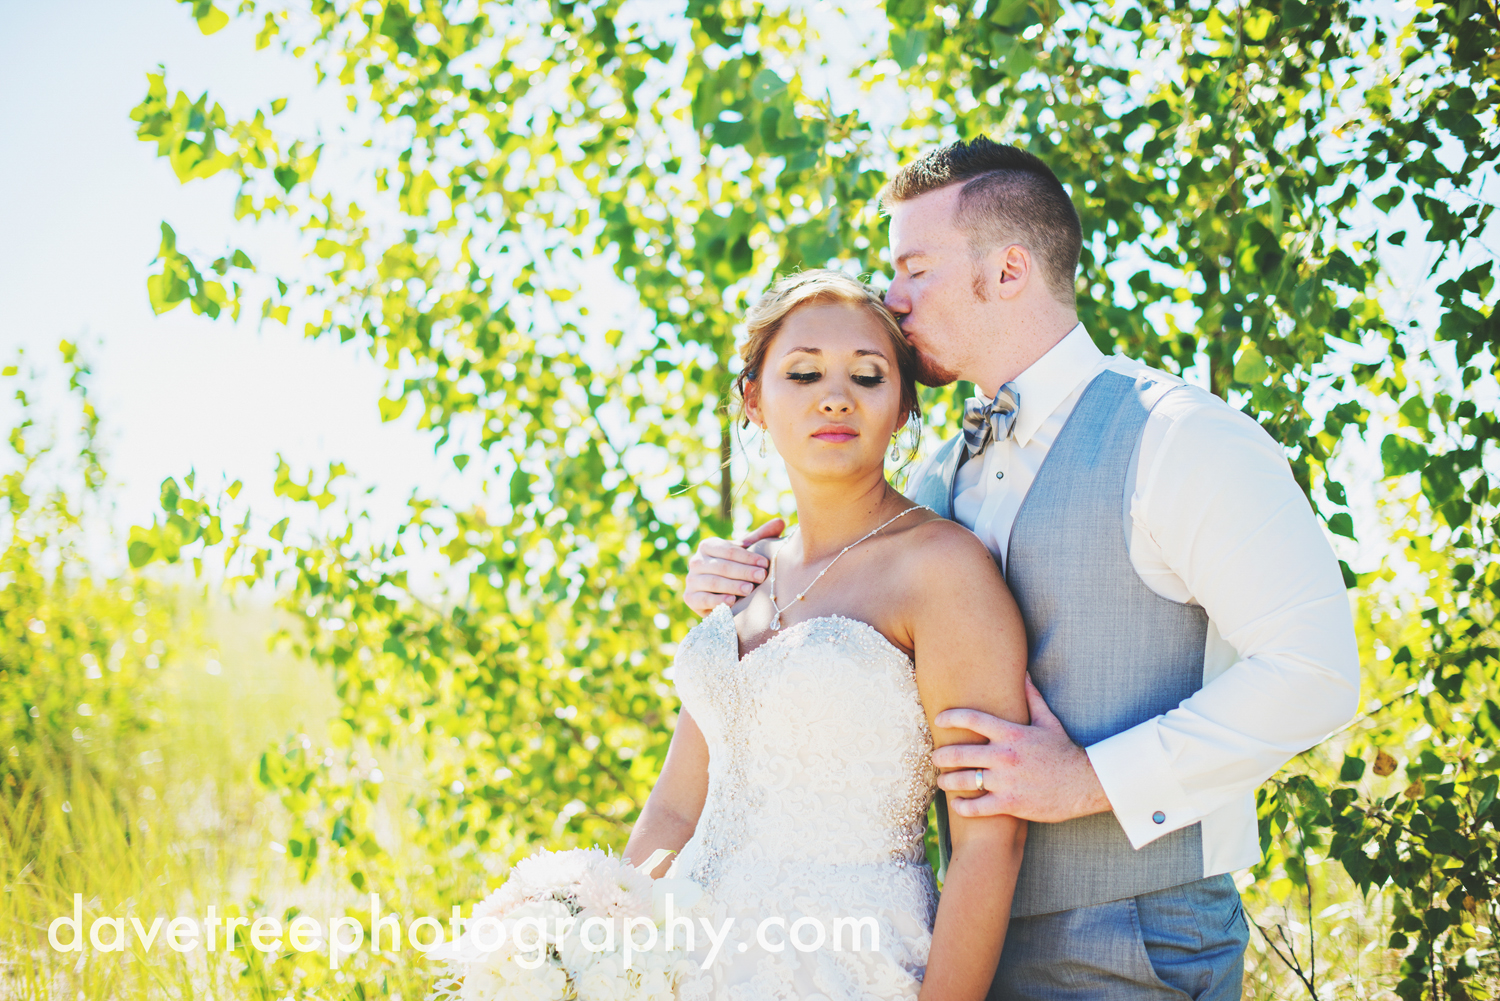 veranda_wedding_photographer_st_joseph_wedding_10.jpg